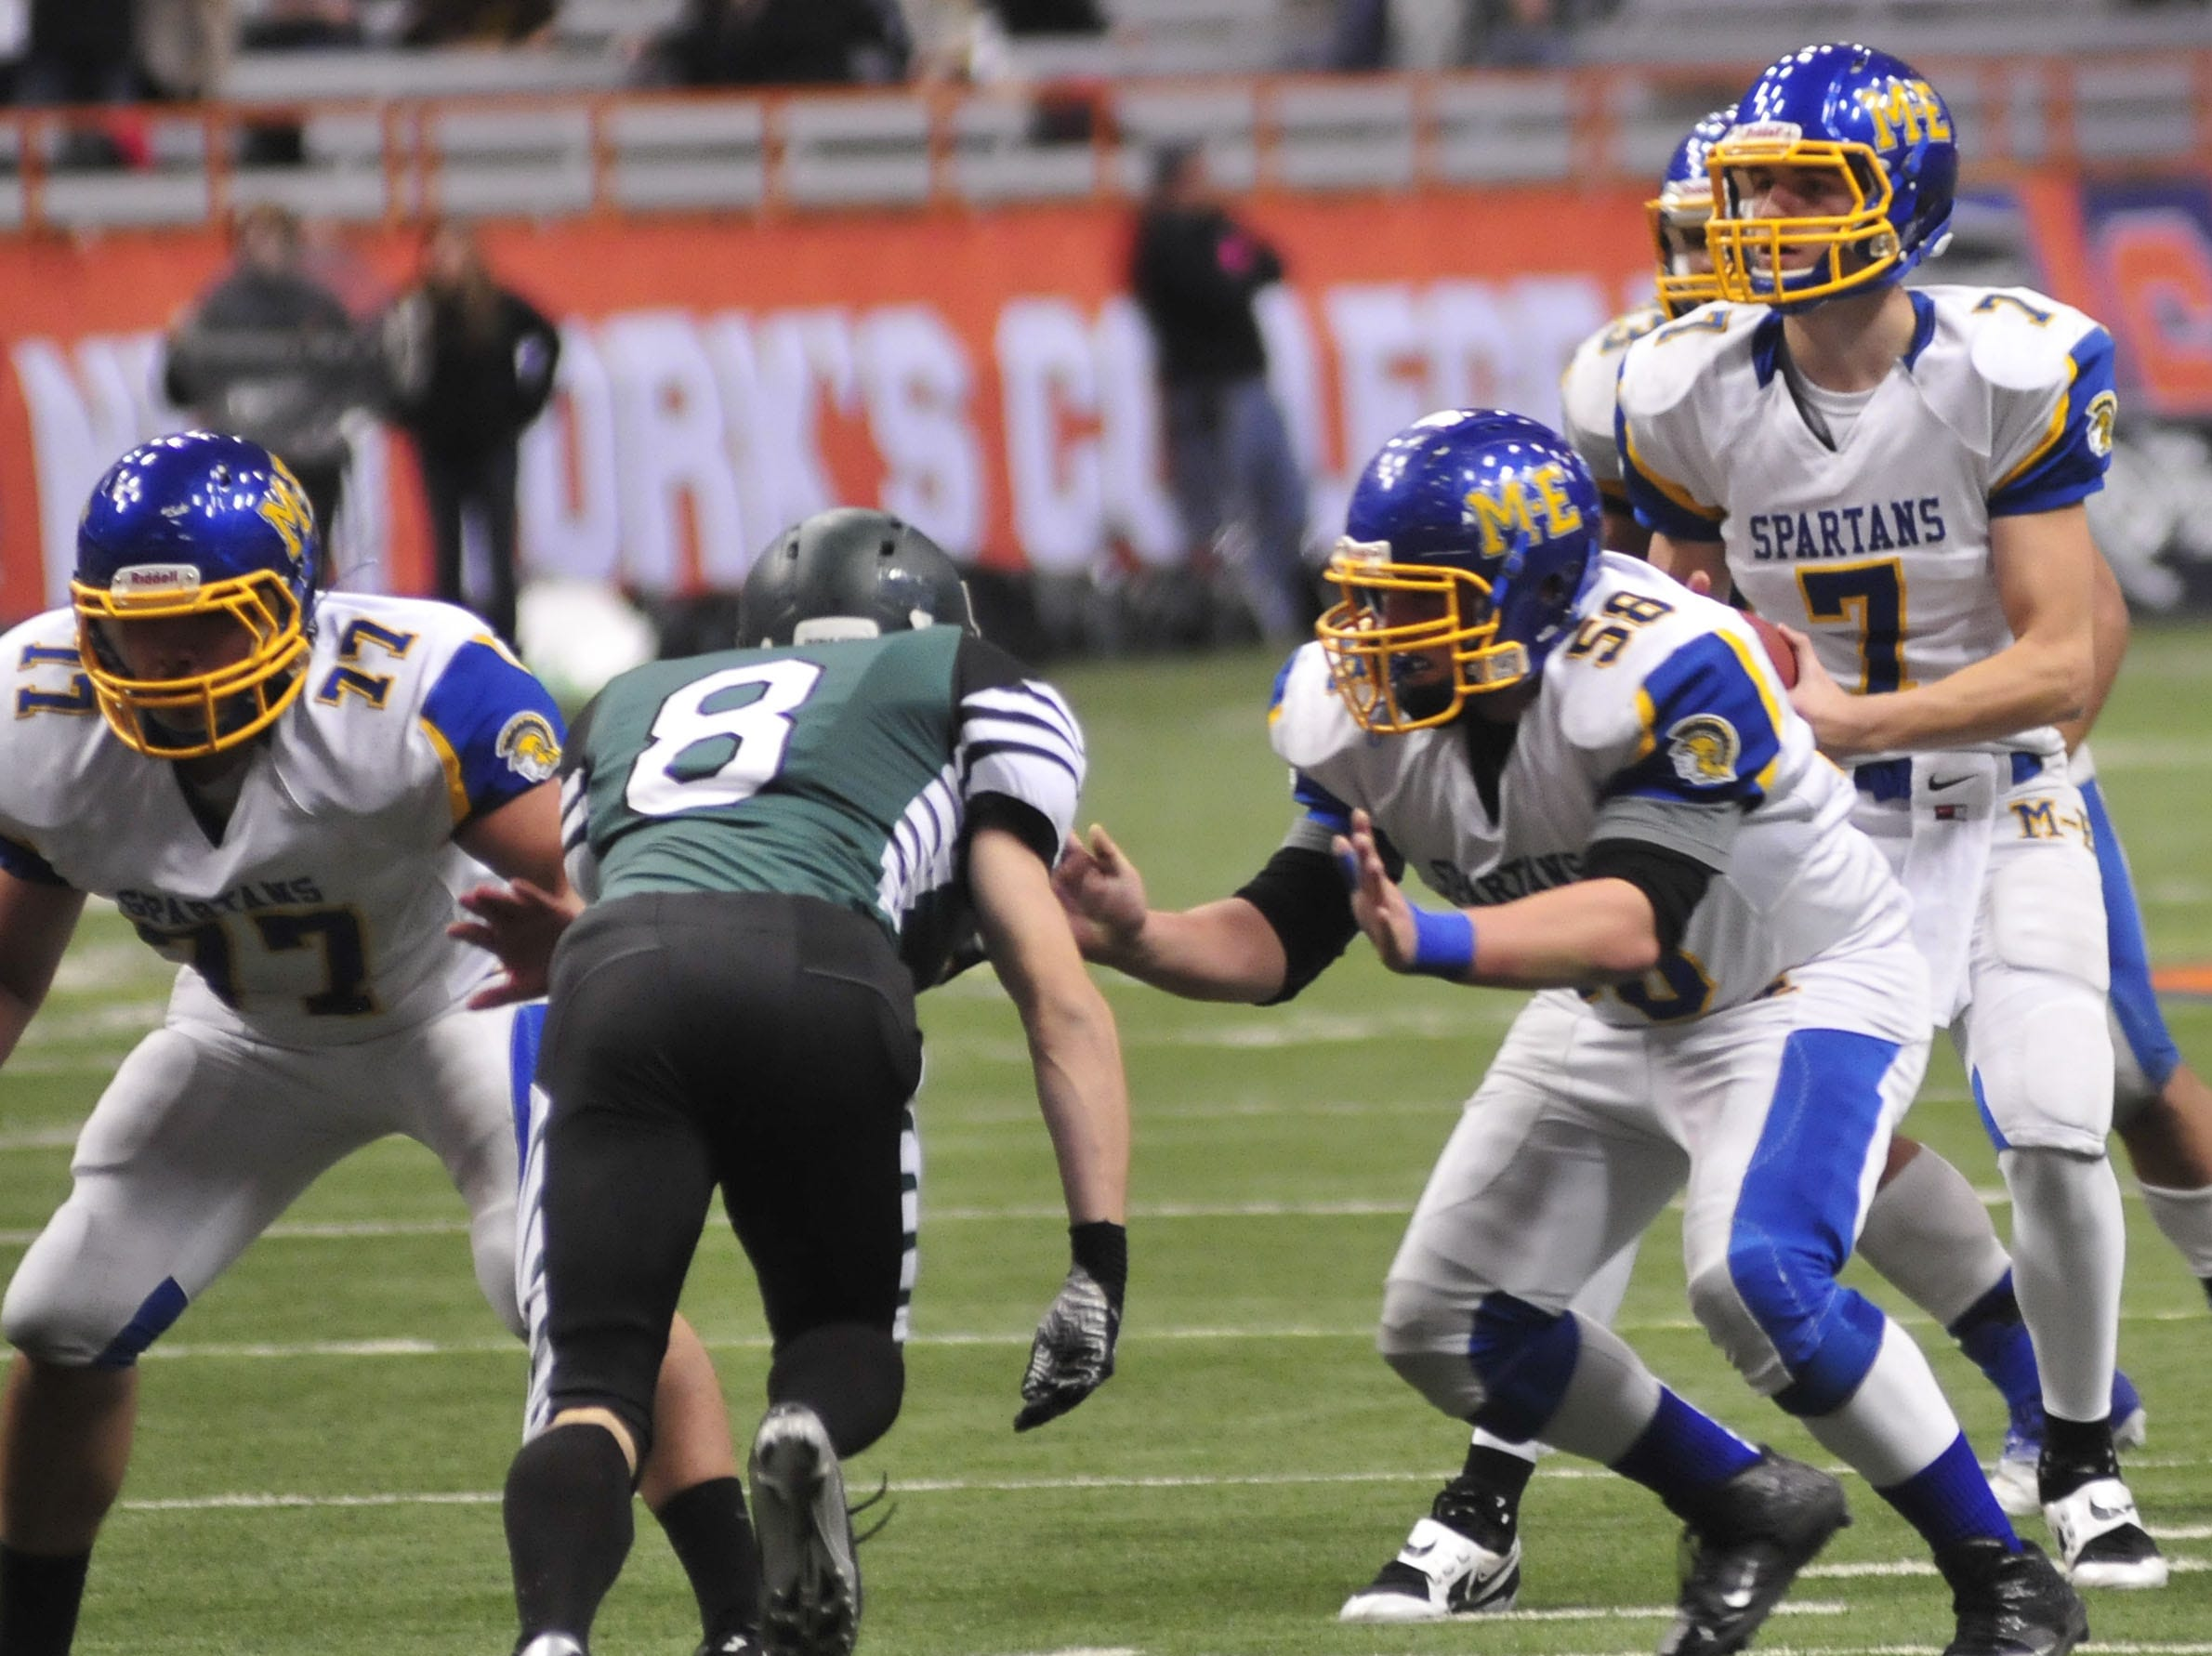 Maine-Endwell's Matt Brozovic protects Kyle Gallagher from Schalmont's Nicholas Langenbach during the 2013 New York State Public High School Athletic Association Football Class B Championship at the Carrier Dome in Syracuse.